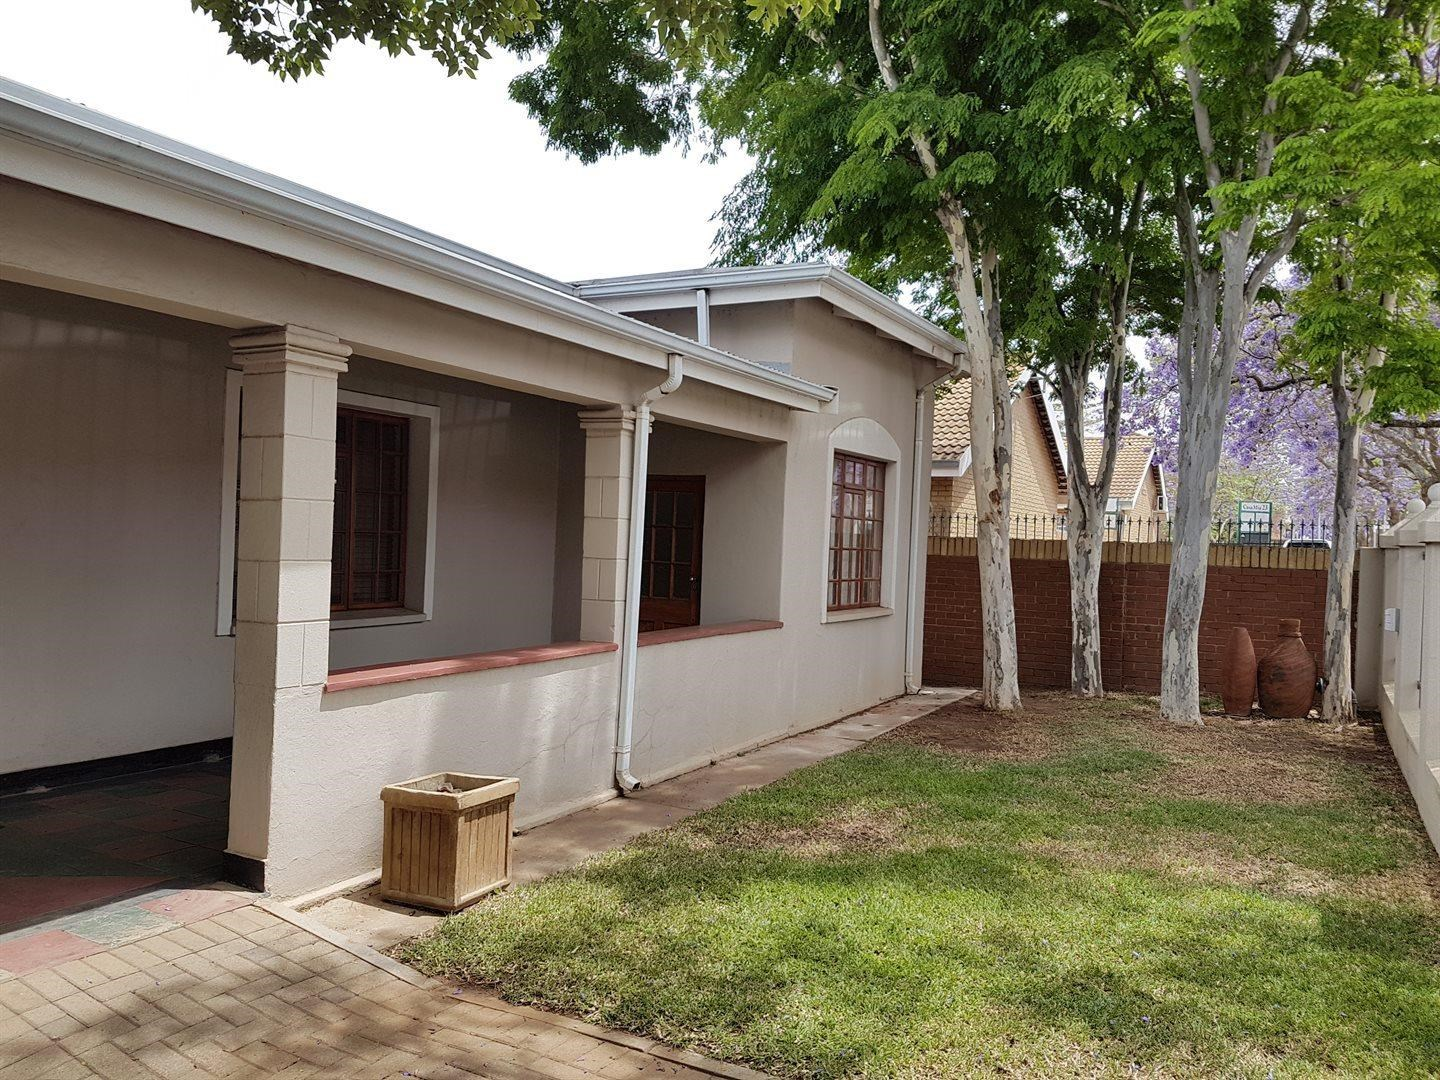 Business for Sale in Polokwane